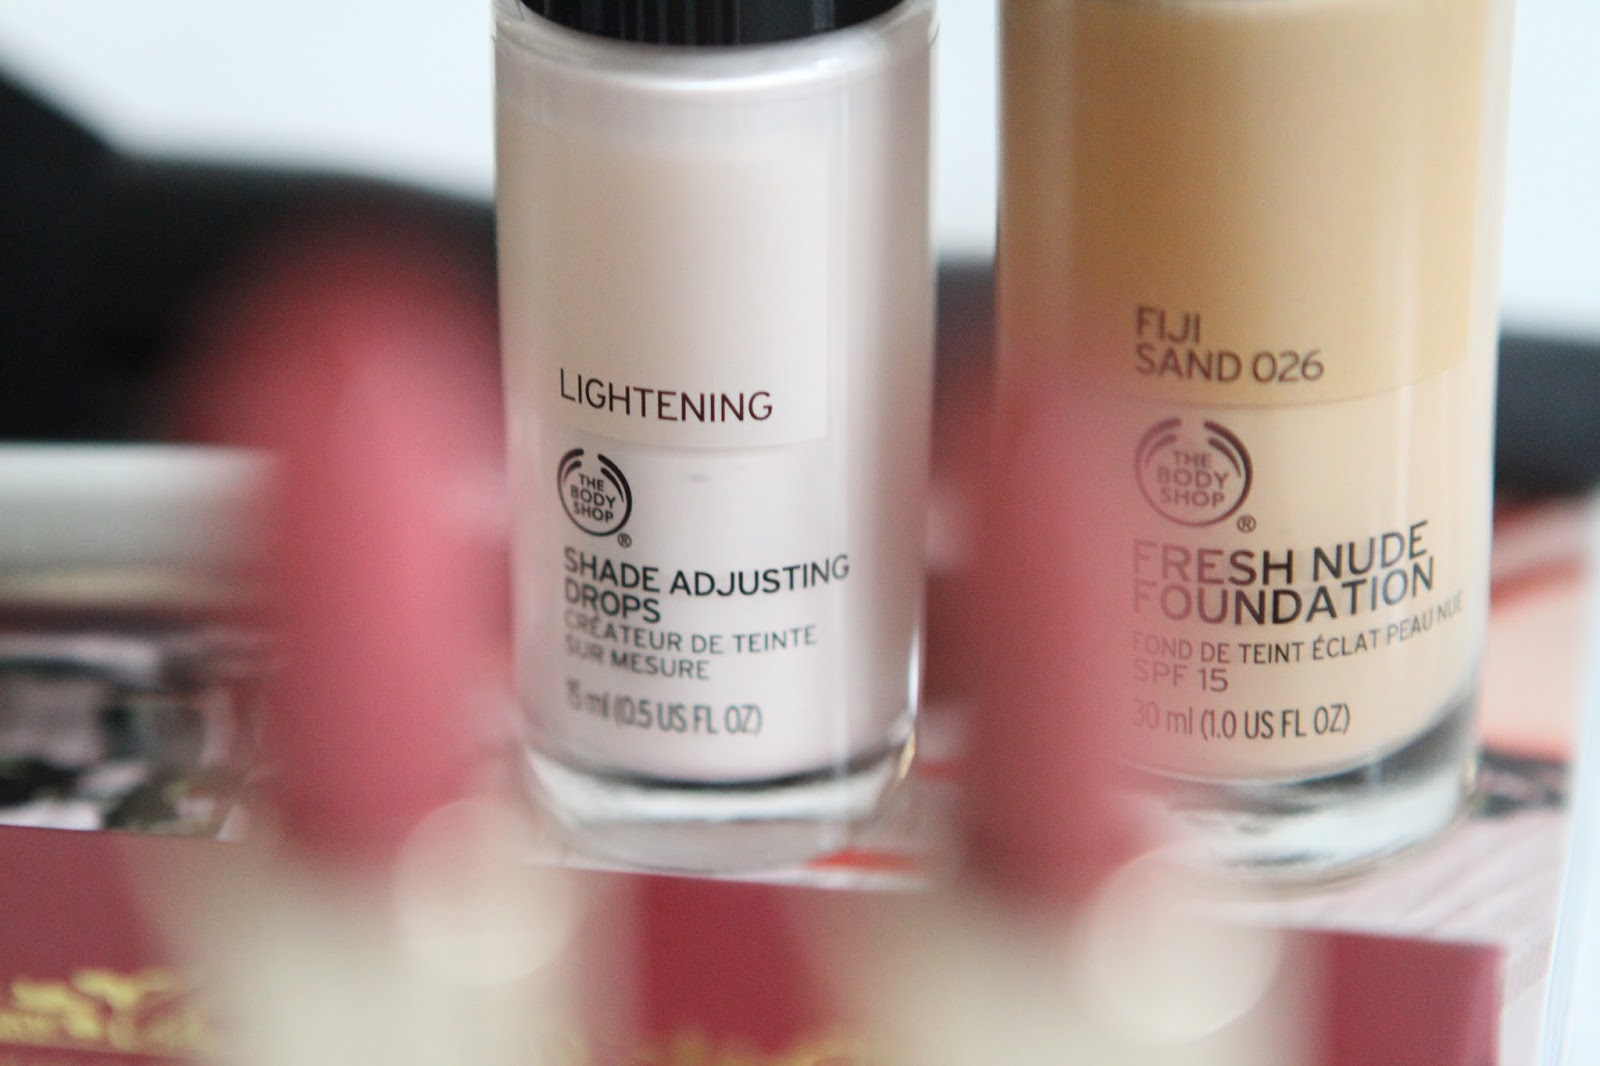 The body shop fresh nude foundation and lightening drops